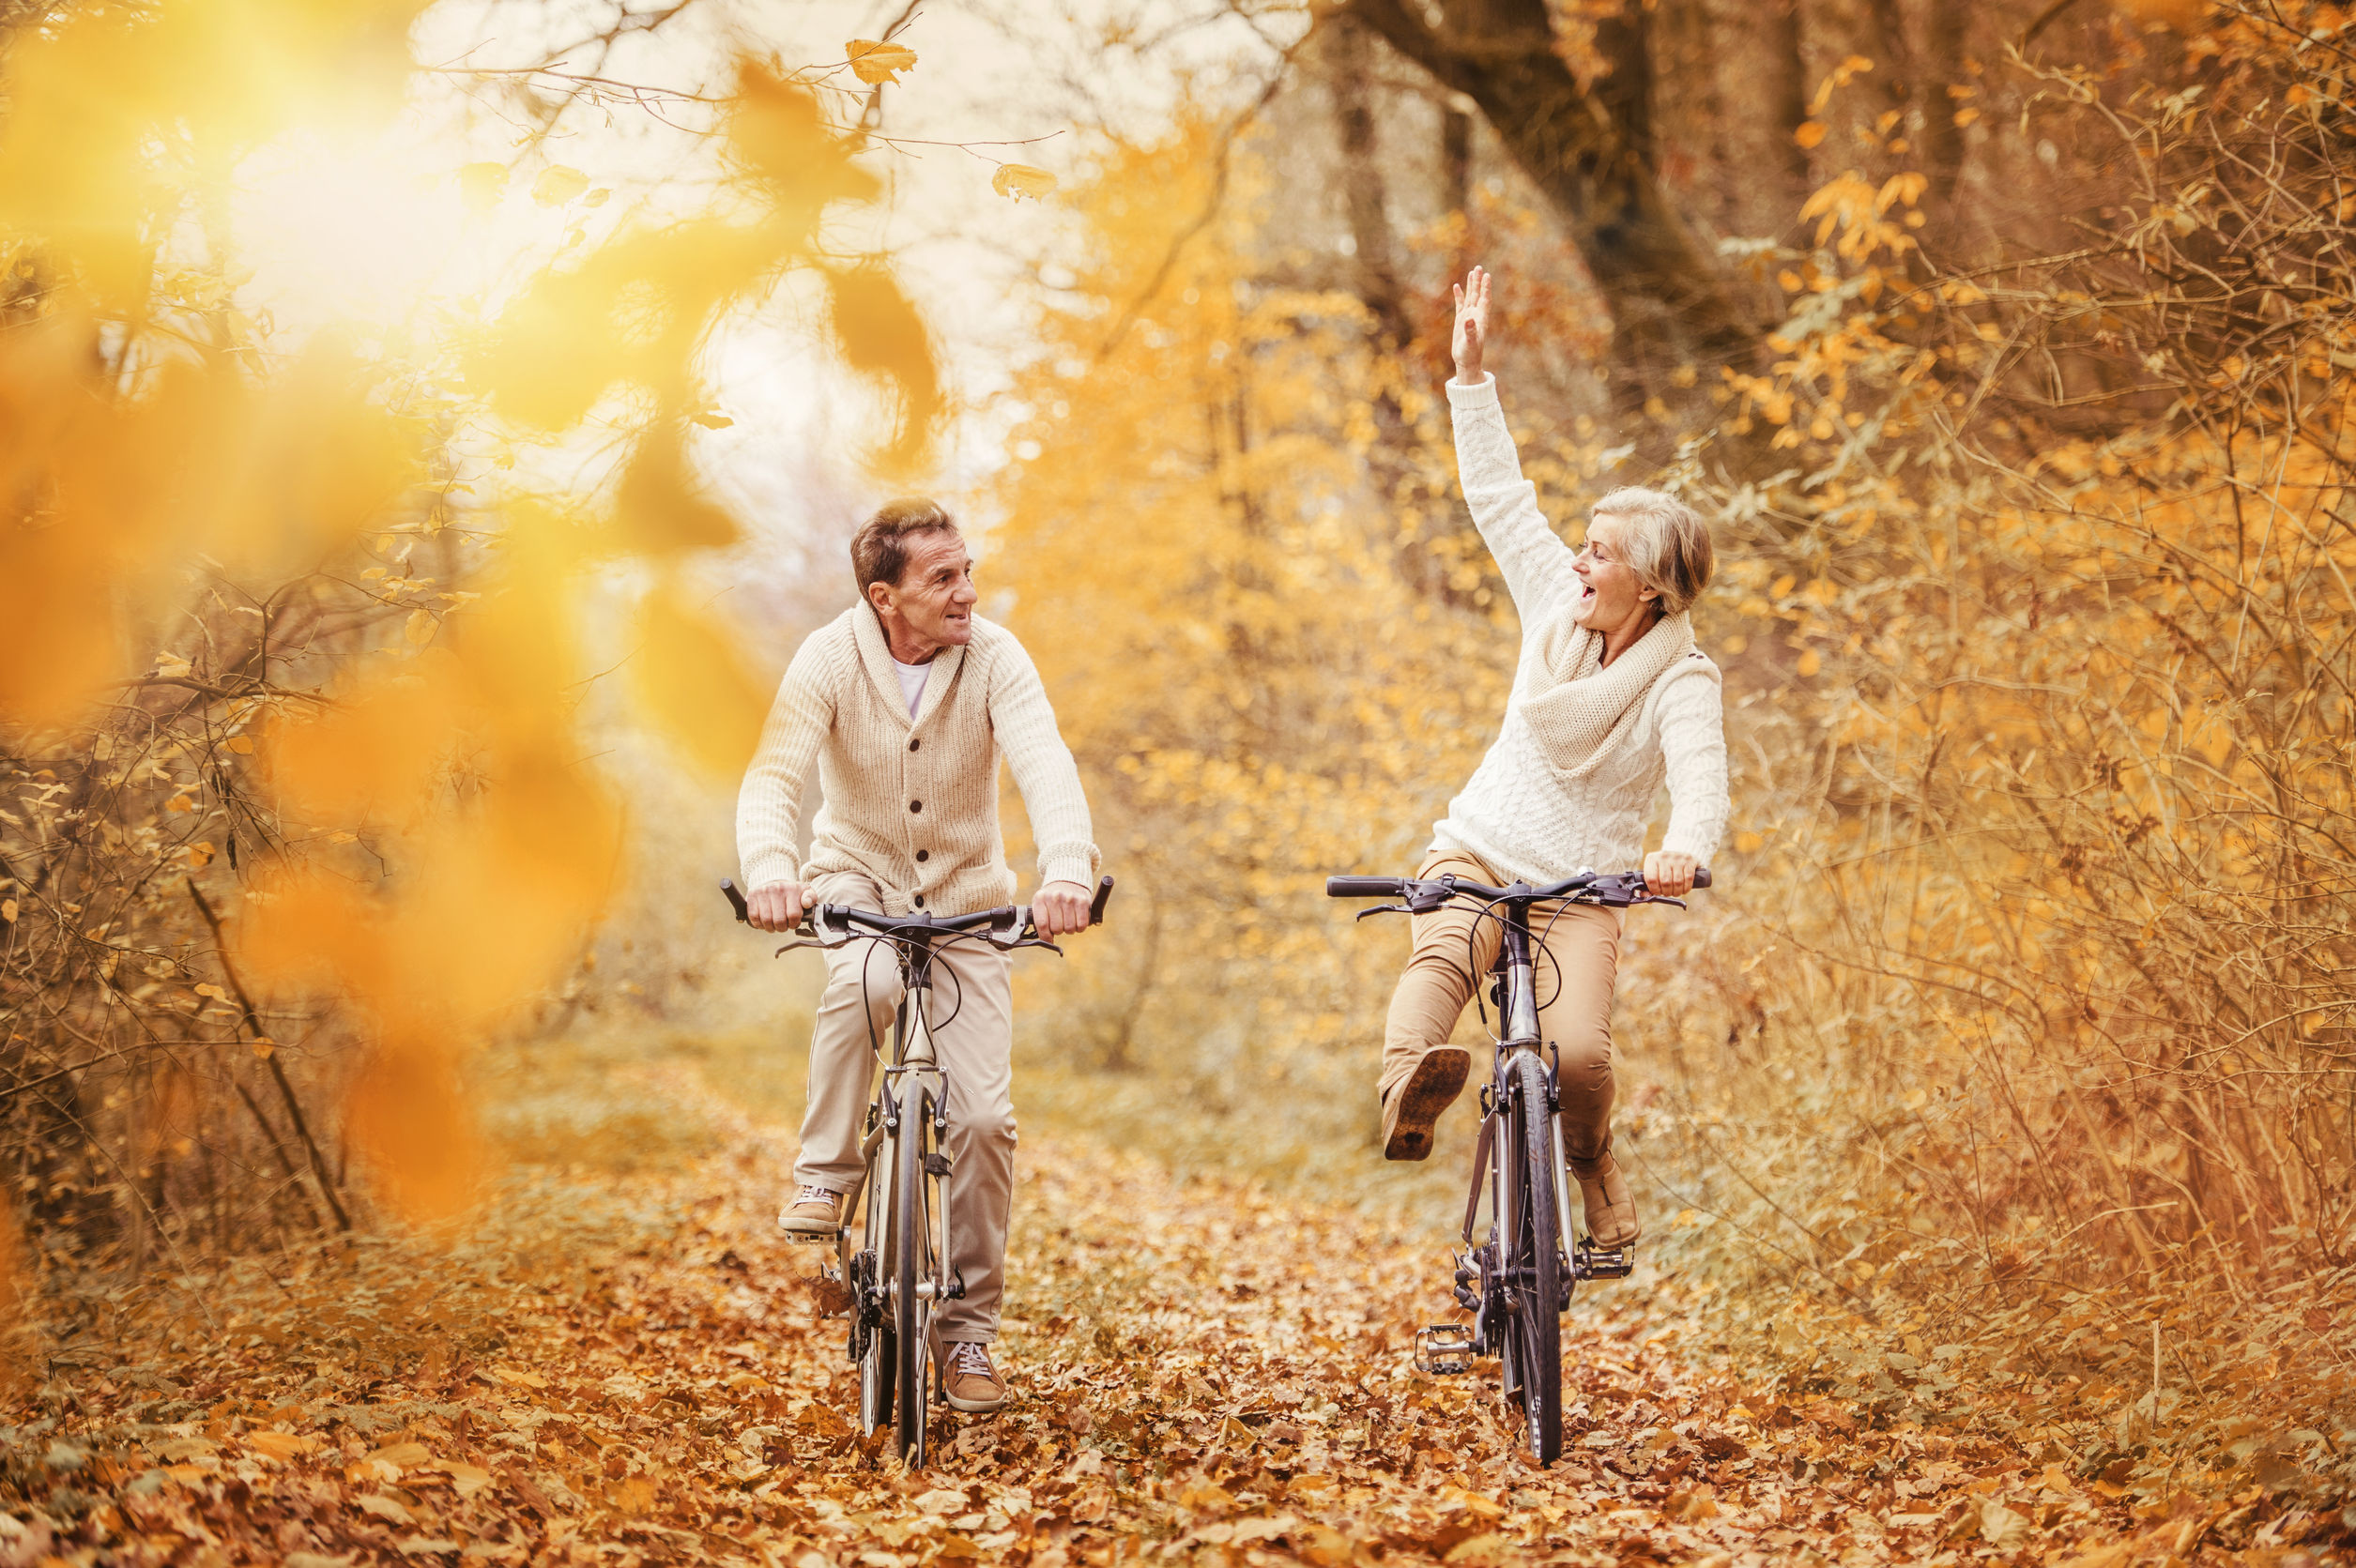 active seniors ridding bike in autumn nature. they having fun outdoor.